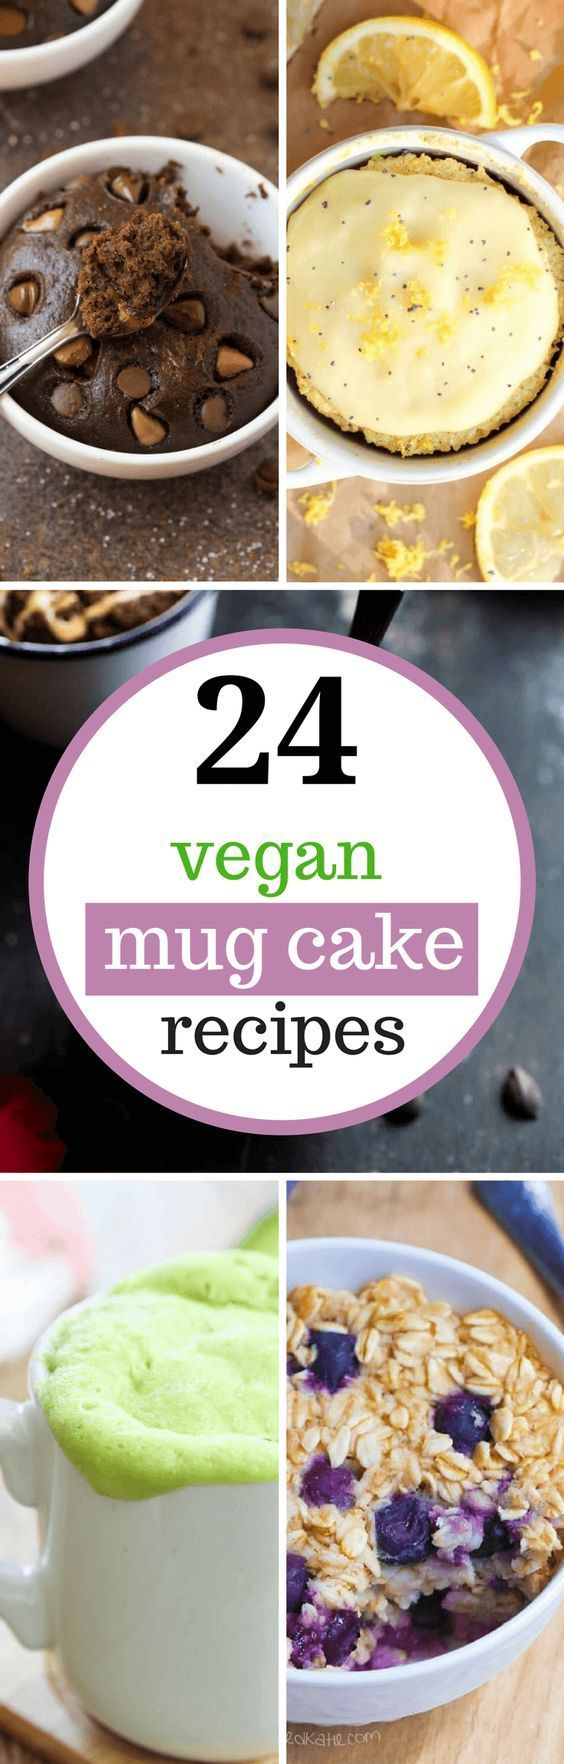 These Vegan Mug Cake Recipes are dairy free with no eggs ...